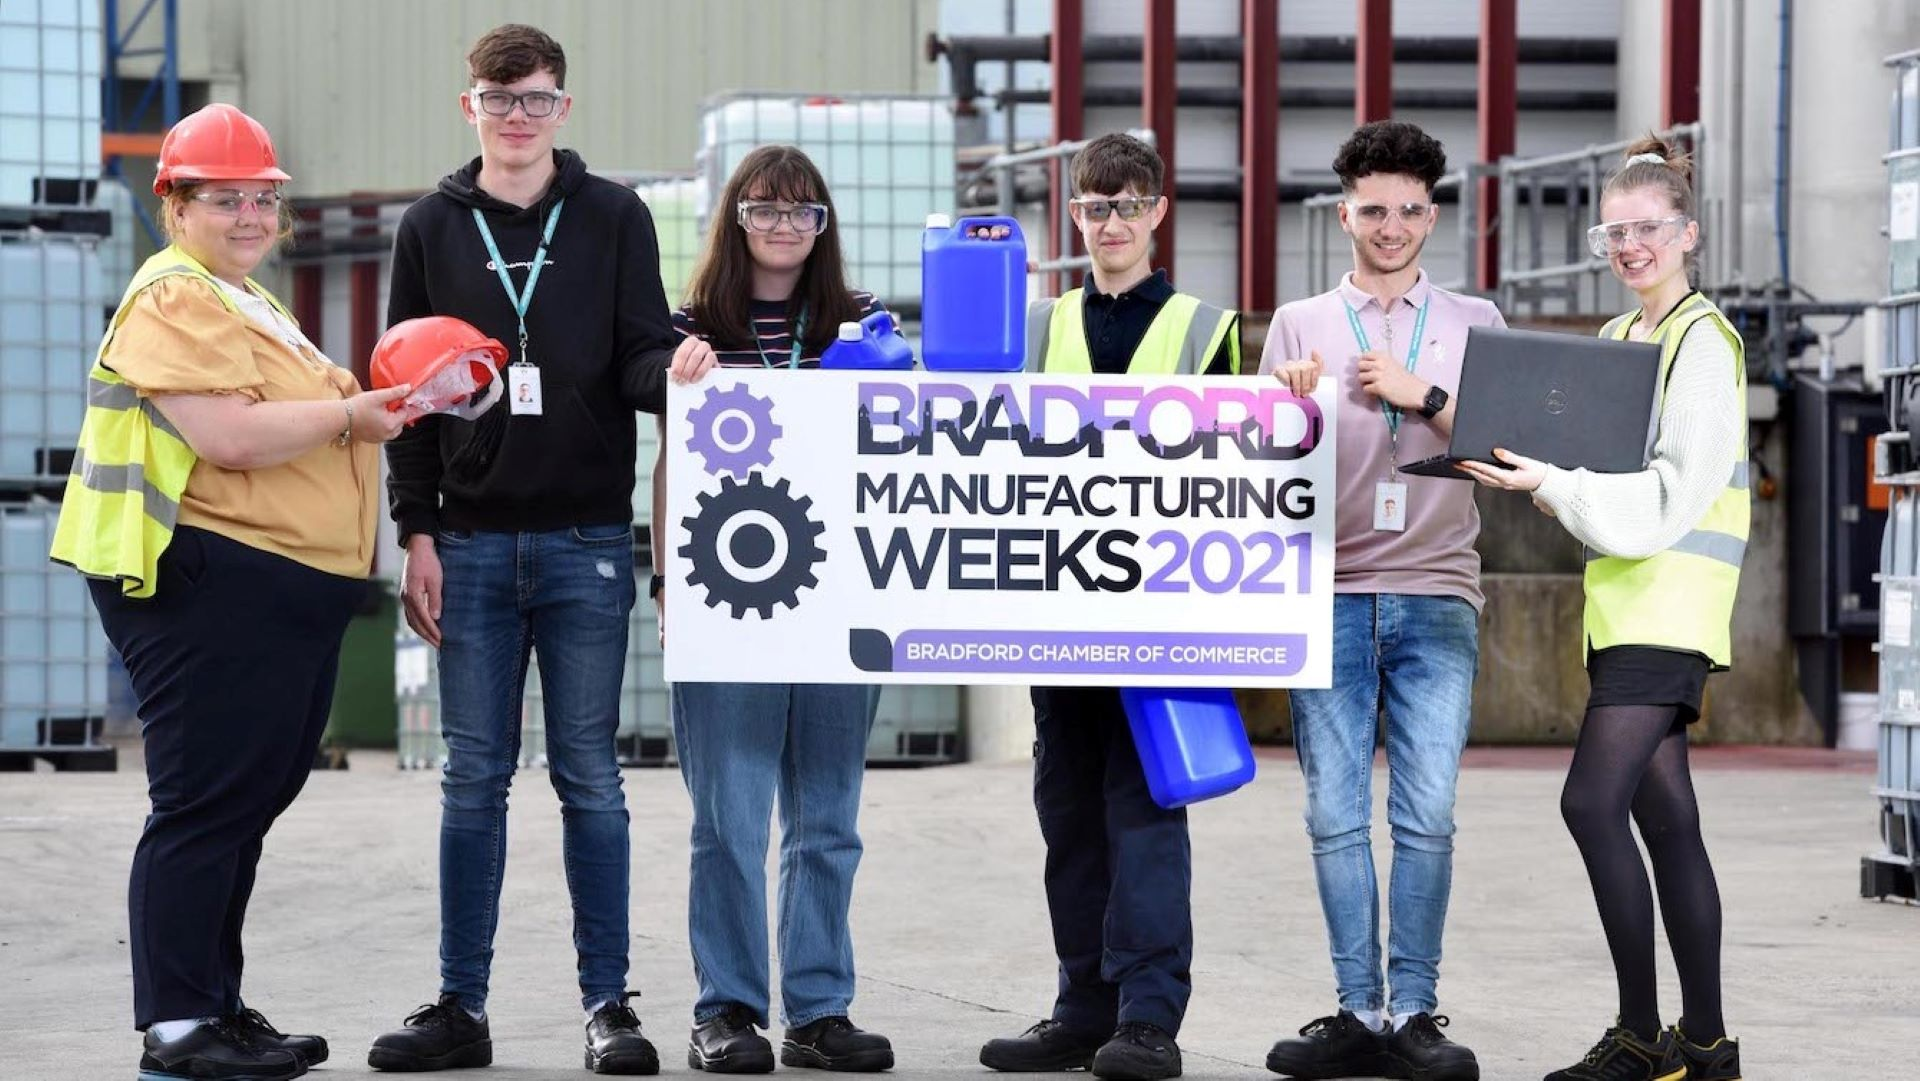 Bradford's manufacturers sign up to engage with pupils from 45 local schools